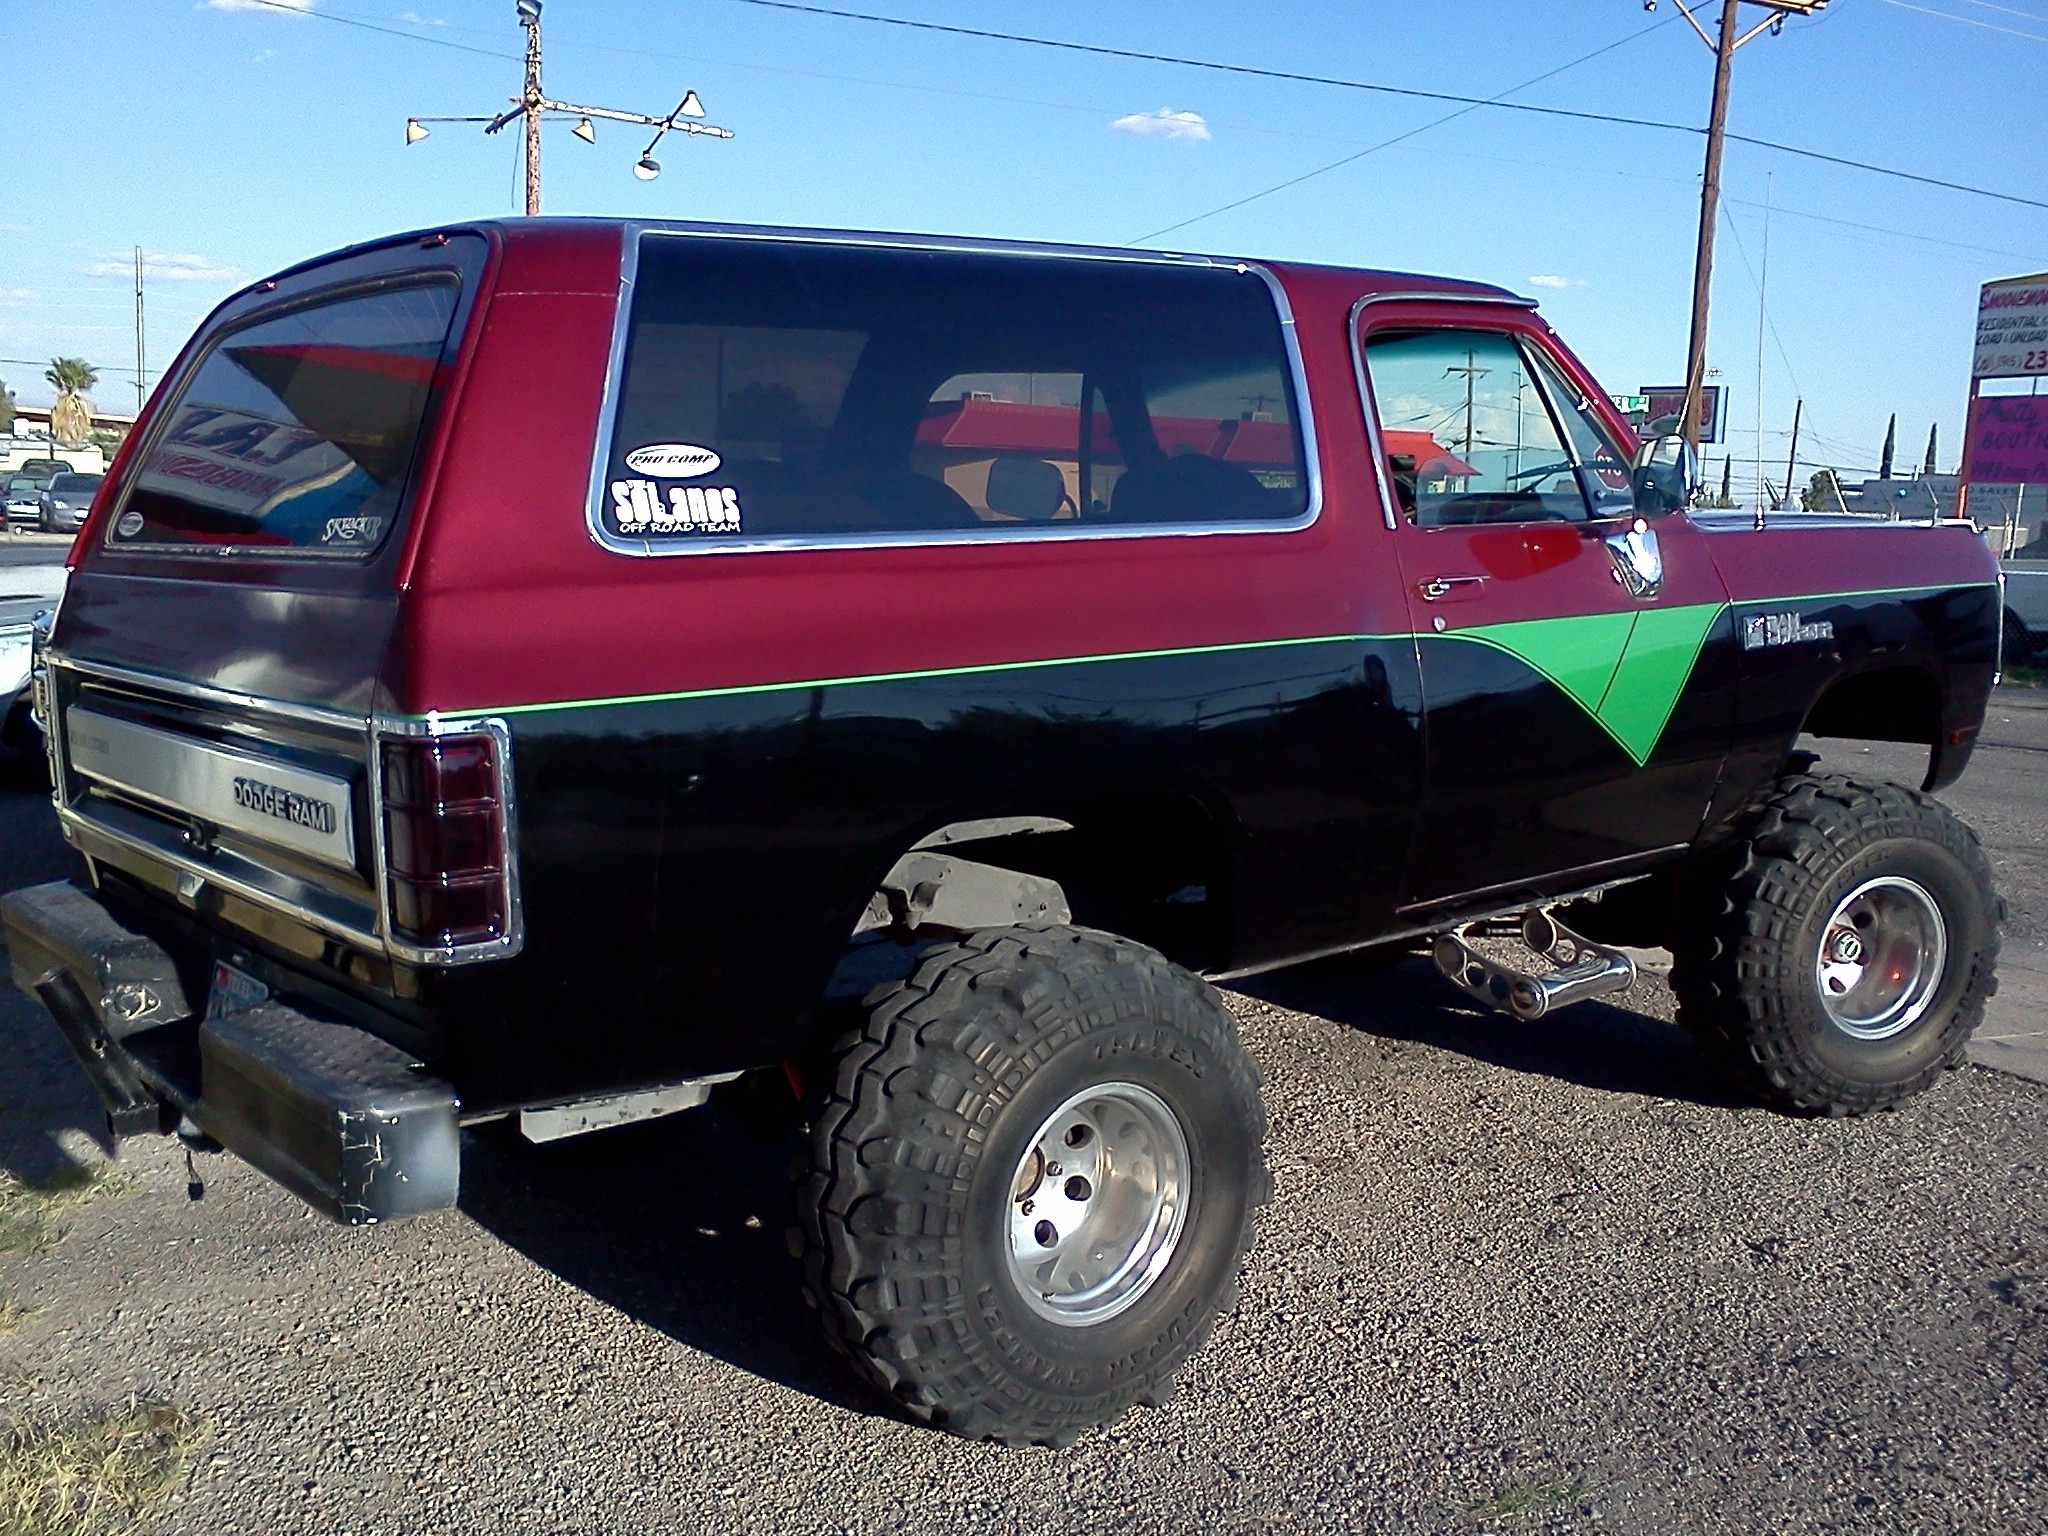 Red Ford Fusion >> 84RAMMER 1984 Dodge Ramcharger Specs, Photos, Modification